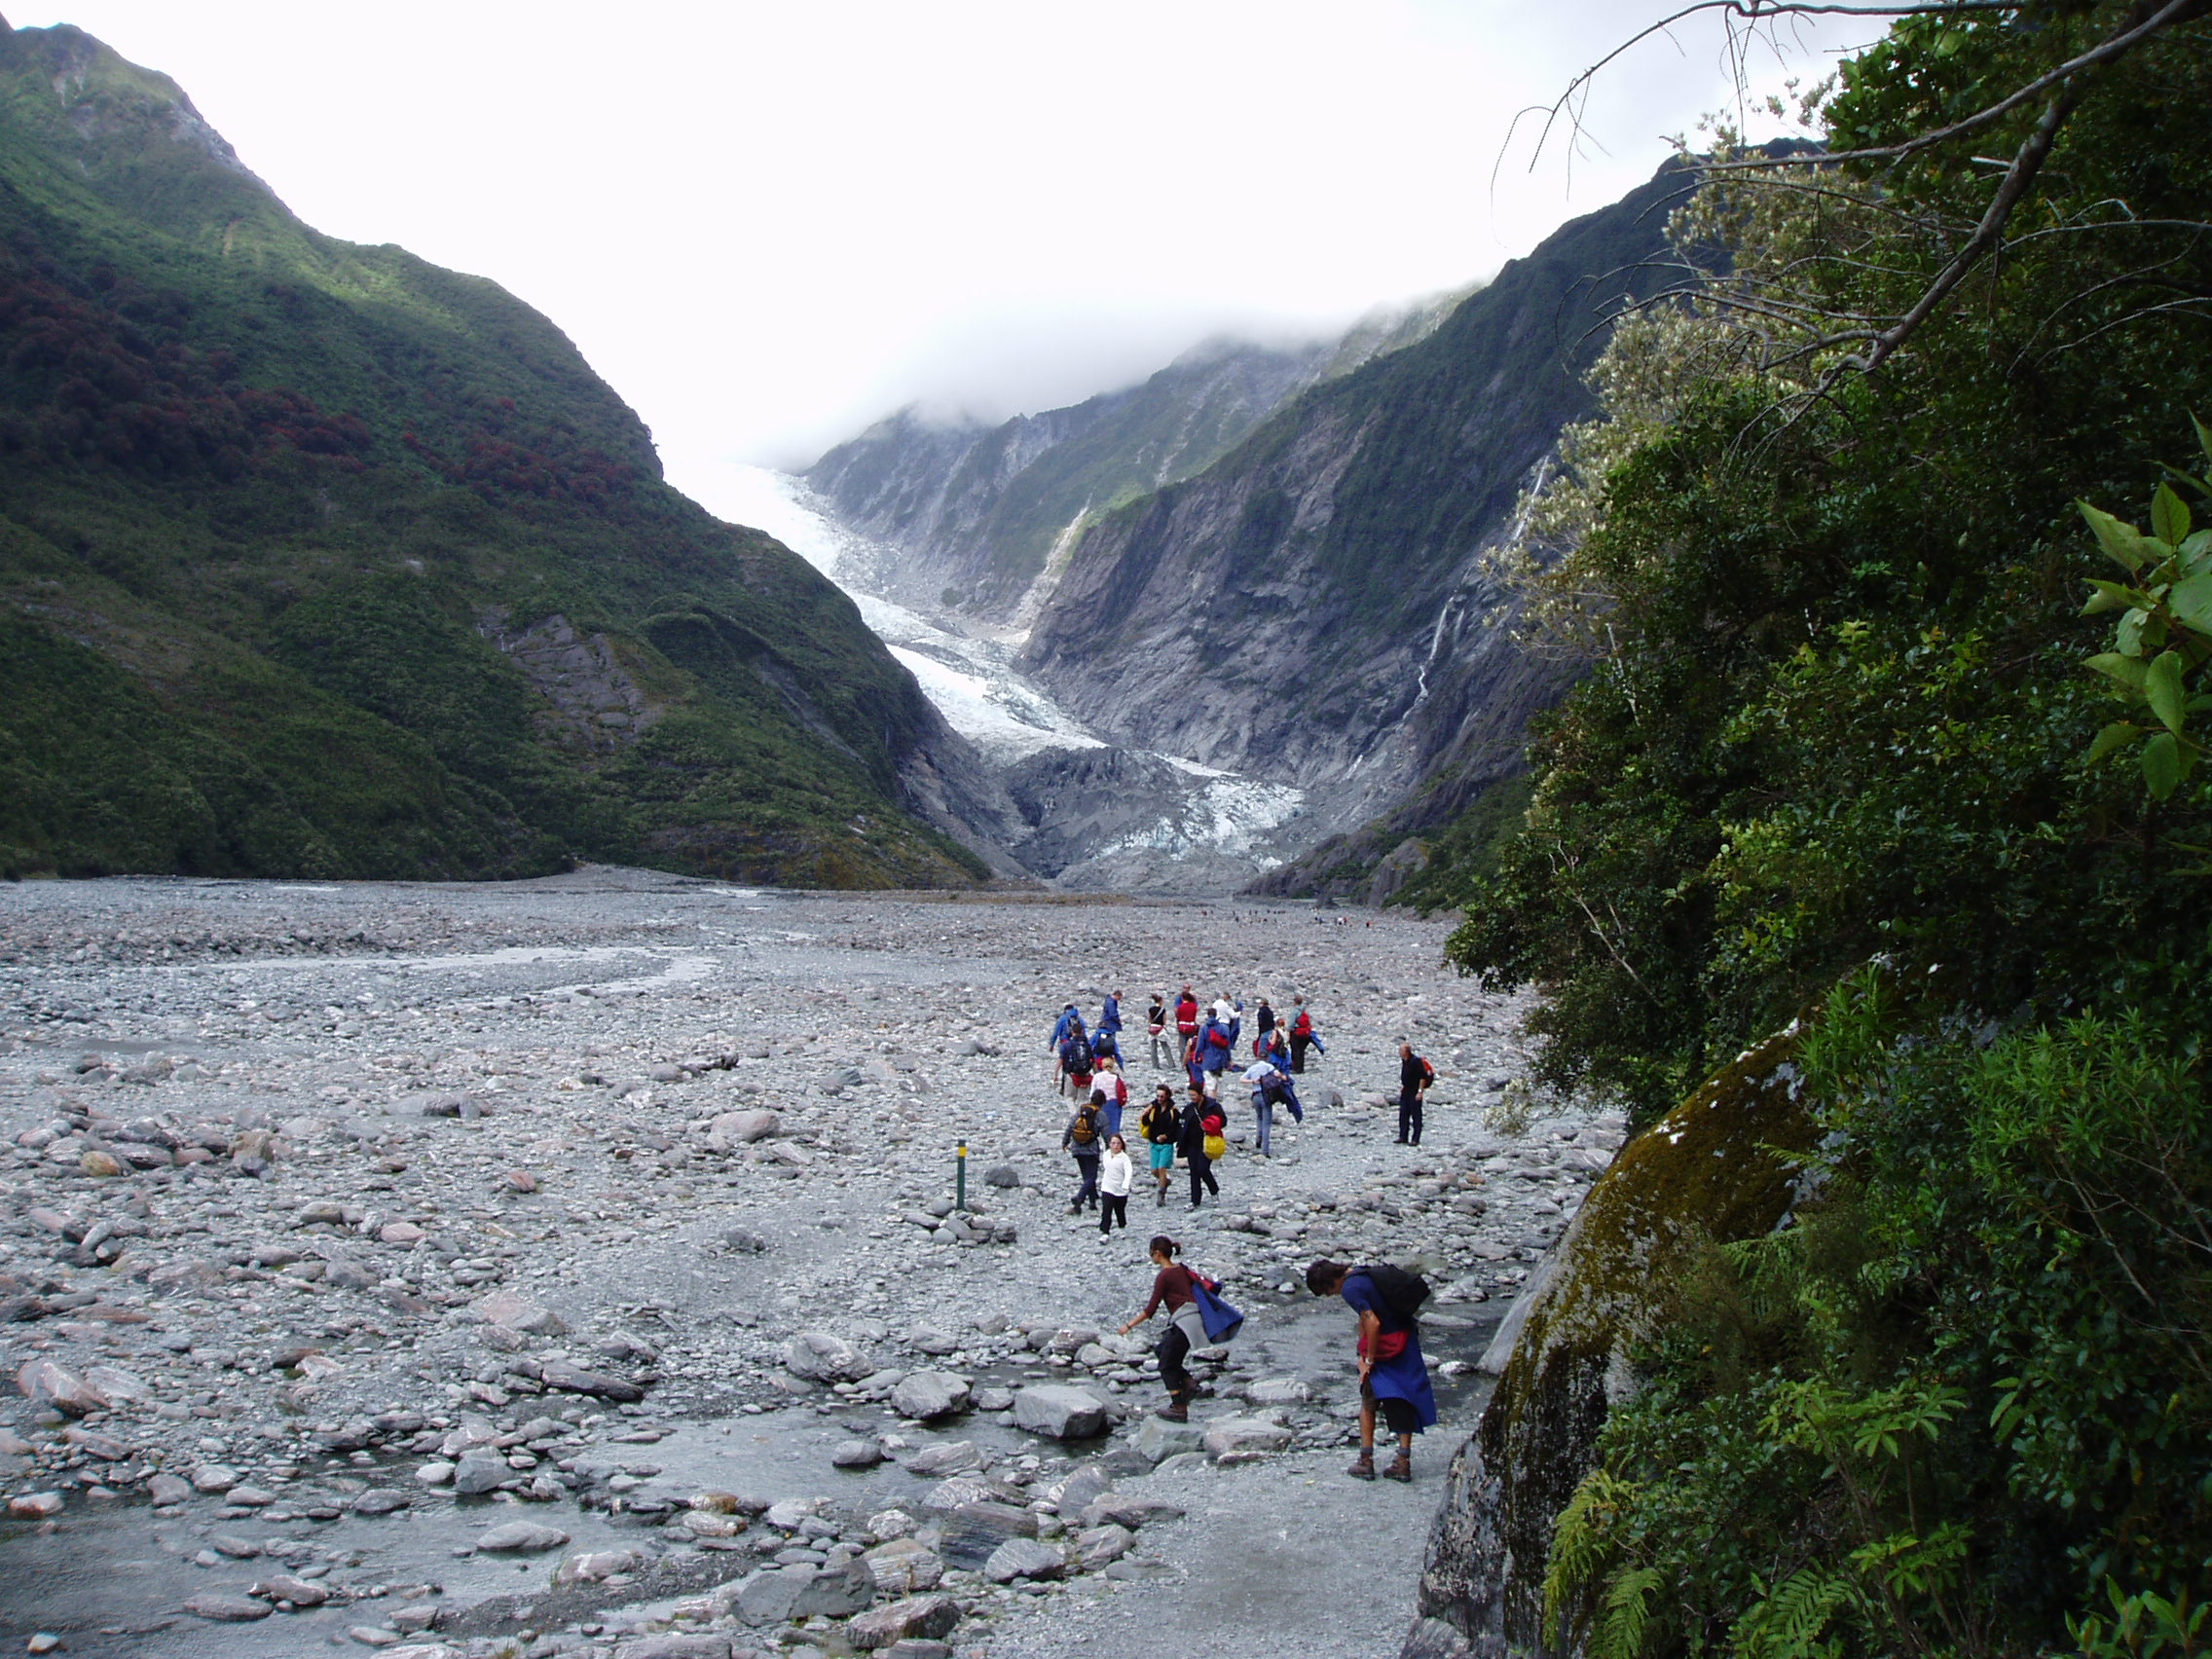 Heading for Franz Josef Glacier.